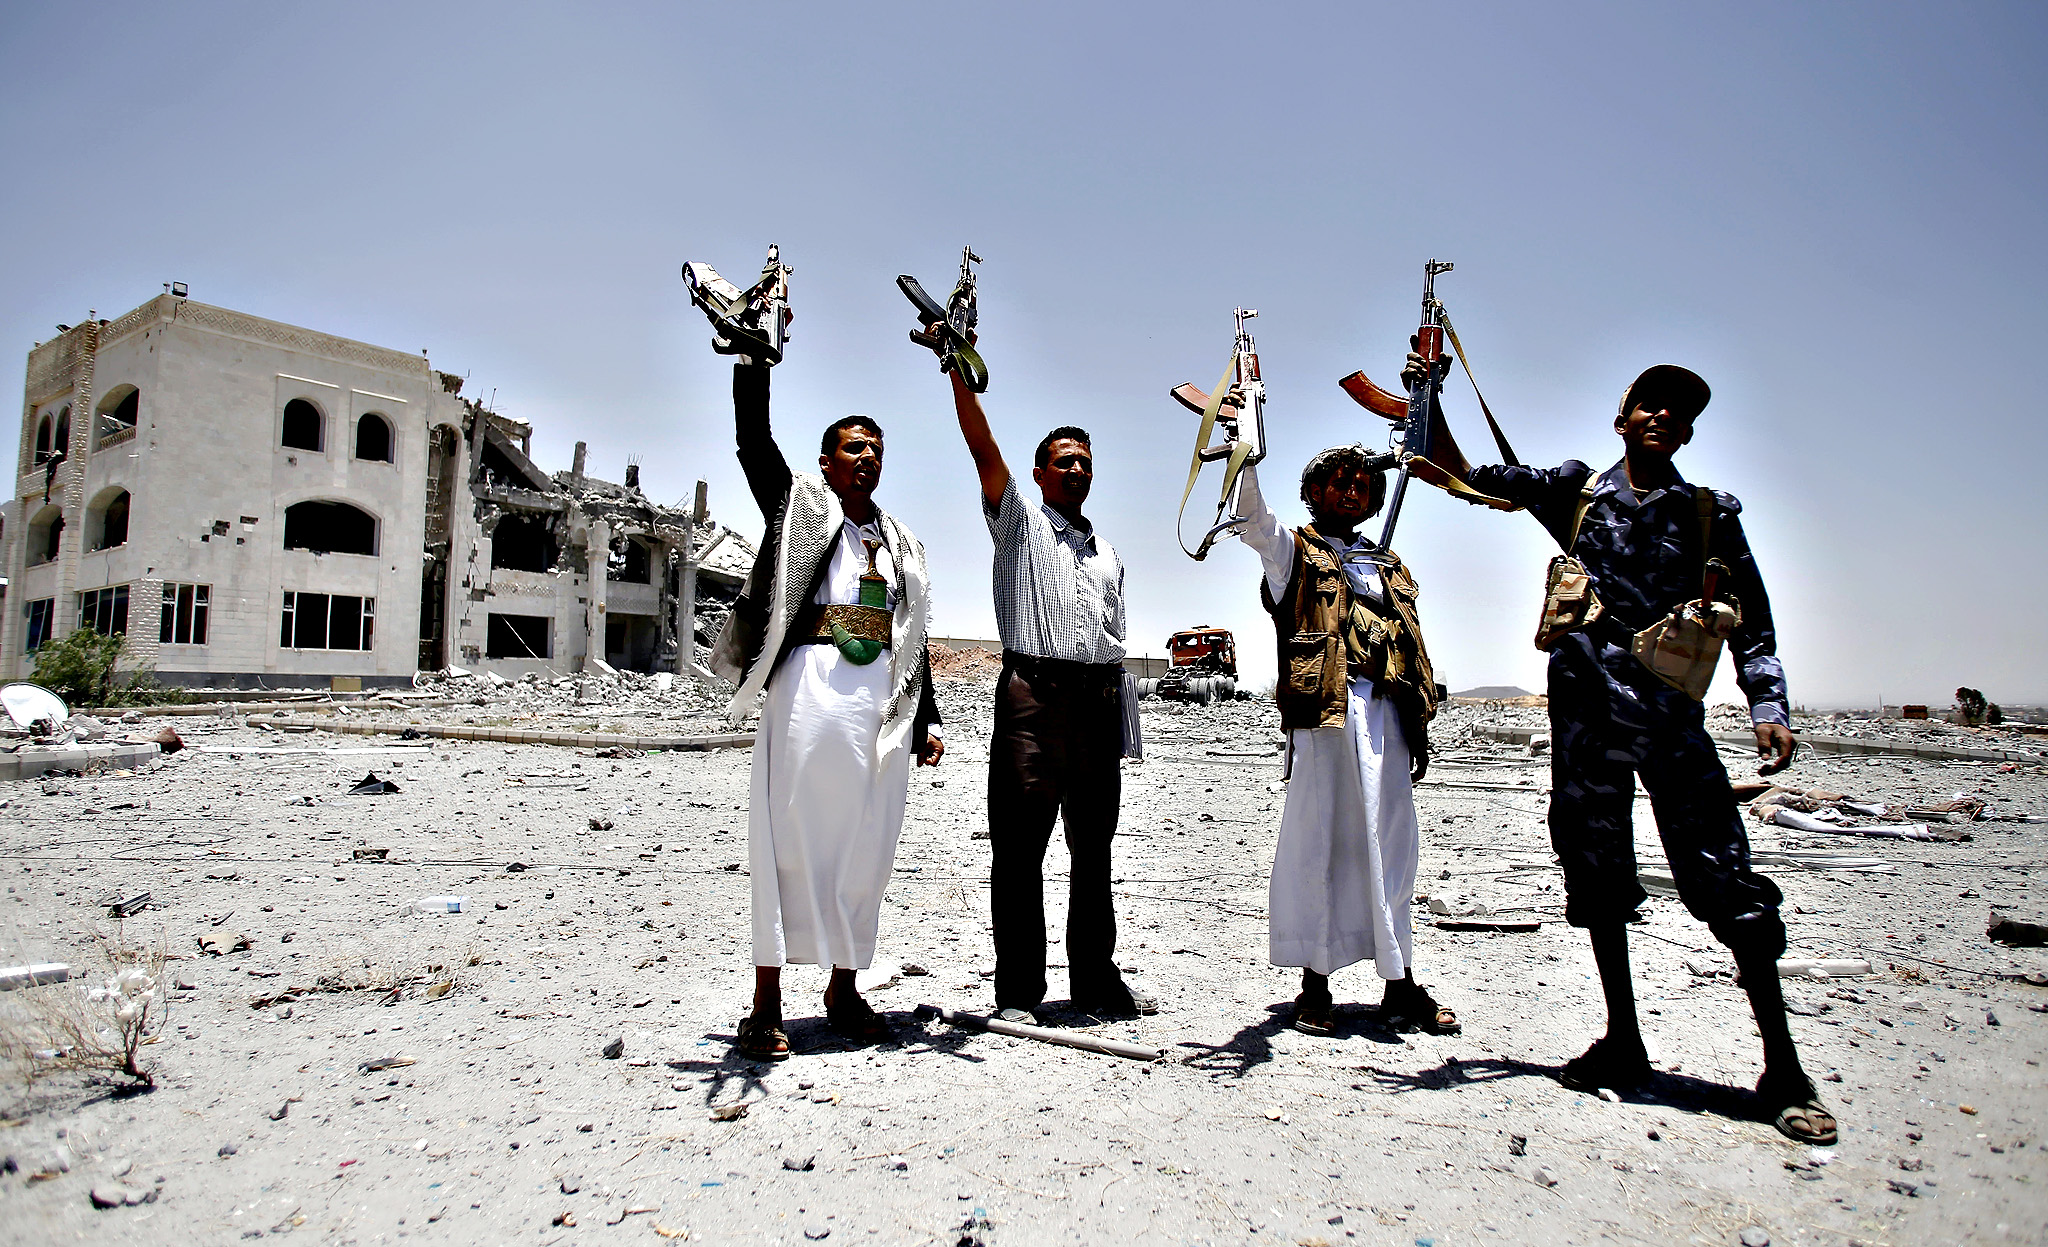 Shiite fighters, known as Houthis, hold up their weapons as they chant slogans at the residence of a military commander of the Houthi militant group, destroyed by a Saudi-led airstrike in Sanaa,, Yemen, Tuesday, April 28, 2015. A security official in Saudi Arabia says a soldier has been killed and another wounded in a gunfight with Shiite Houthi rebels along the kingdom's southern border with Yemen